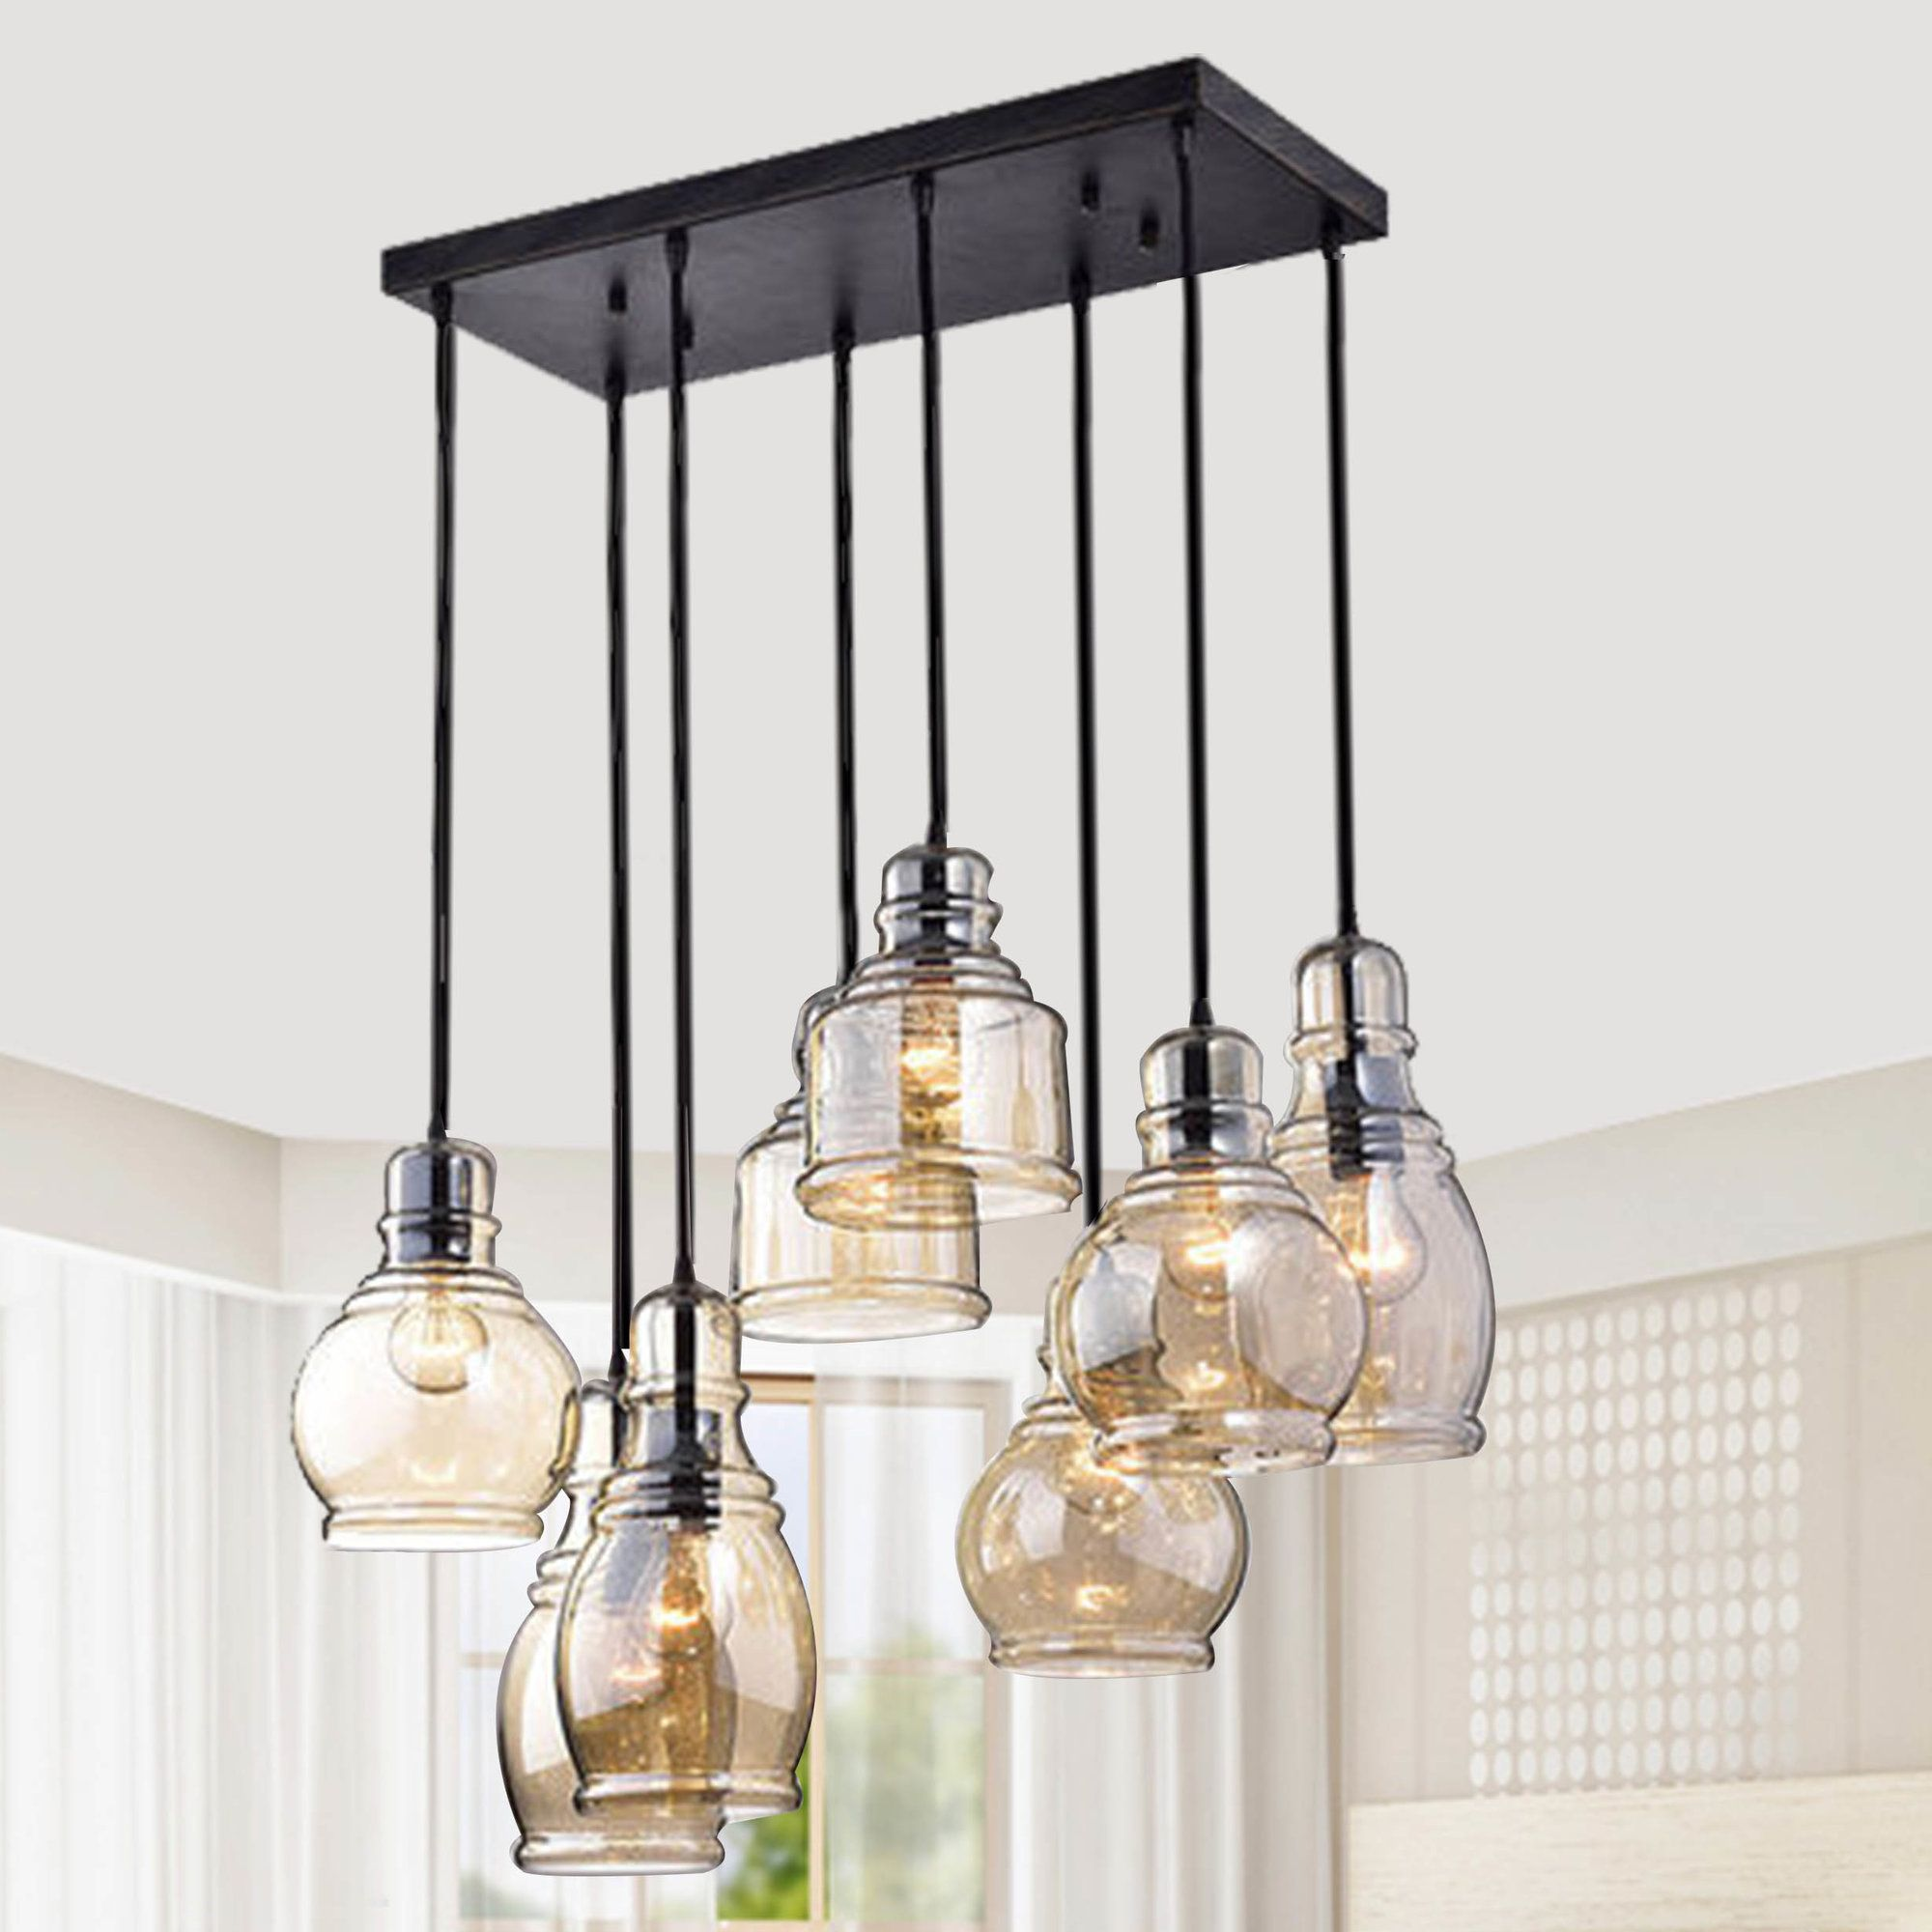 Manon light cluster pendant products pinterest products